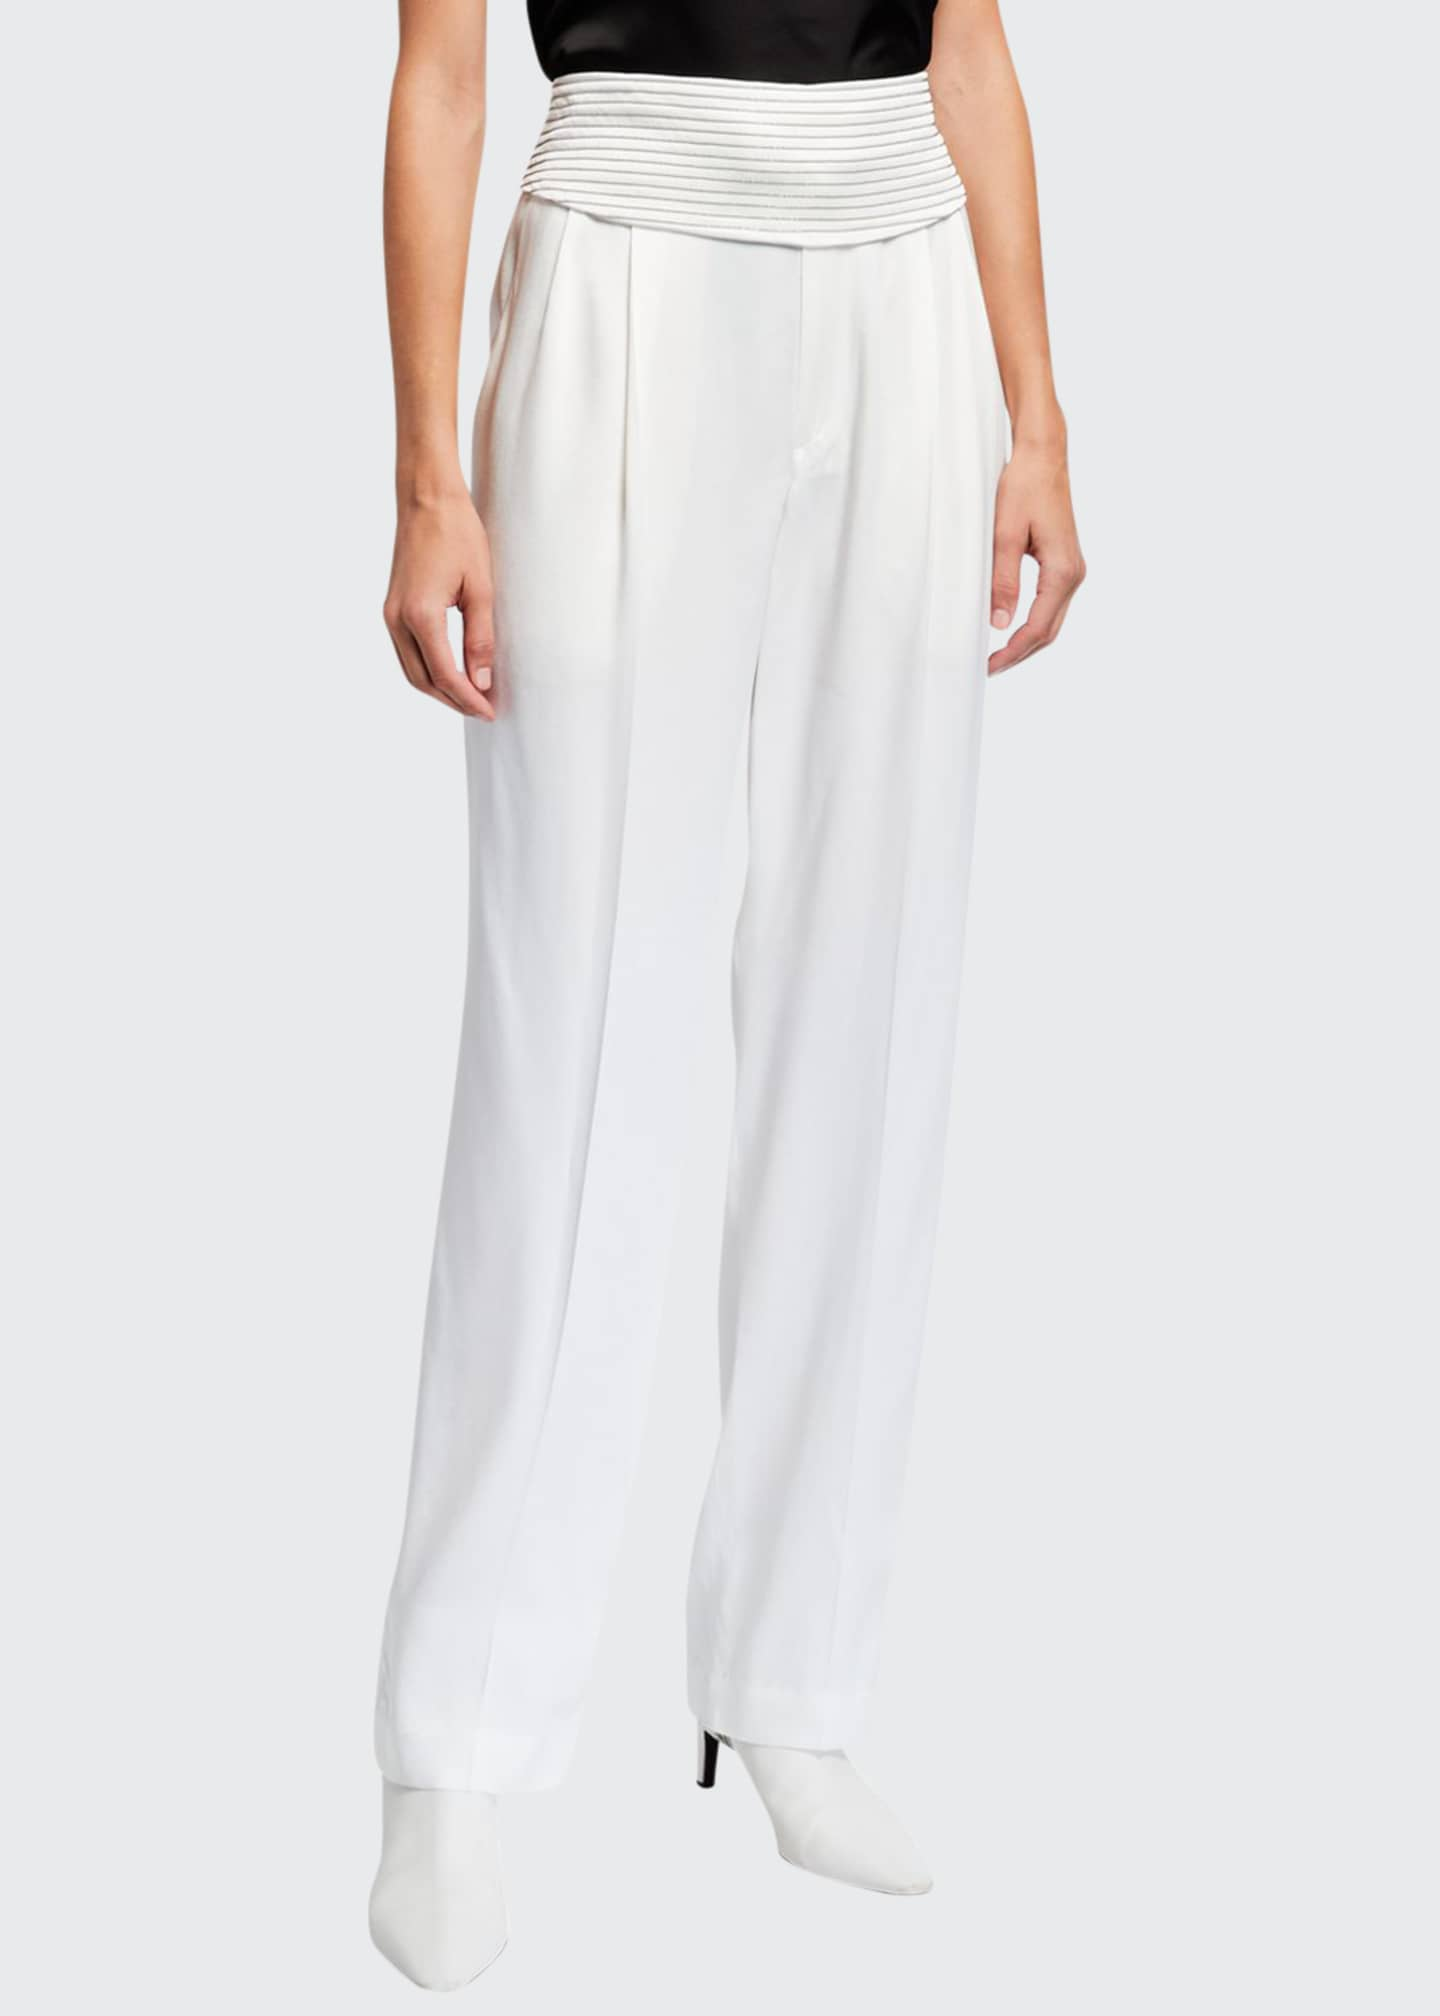 Brunello Cucinelli Pleated Silk Pants with Monili-Striped Belt